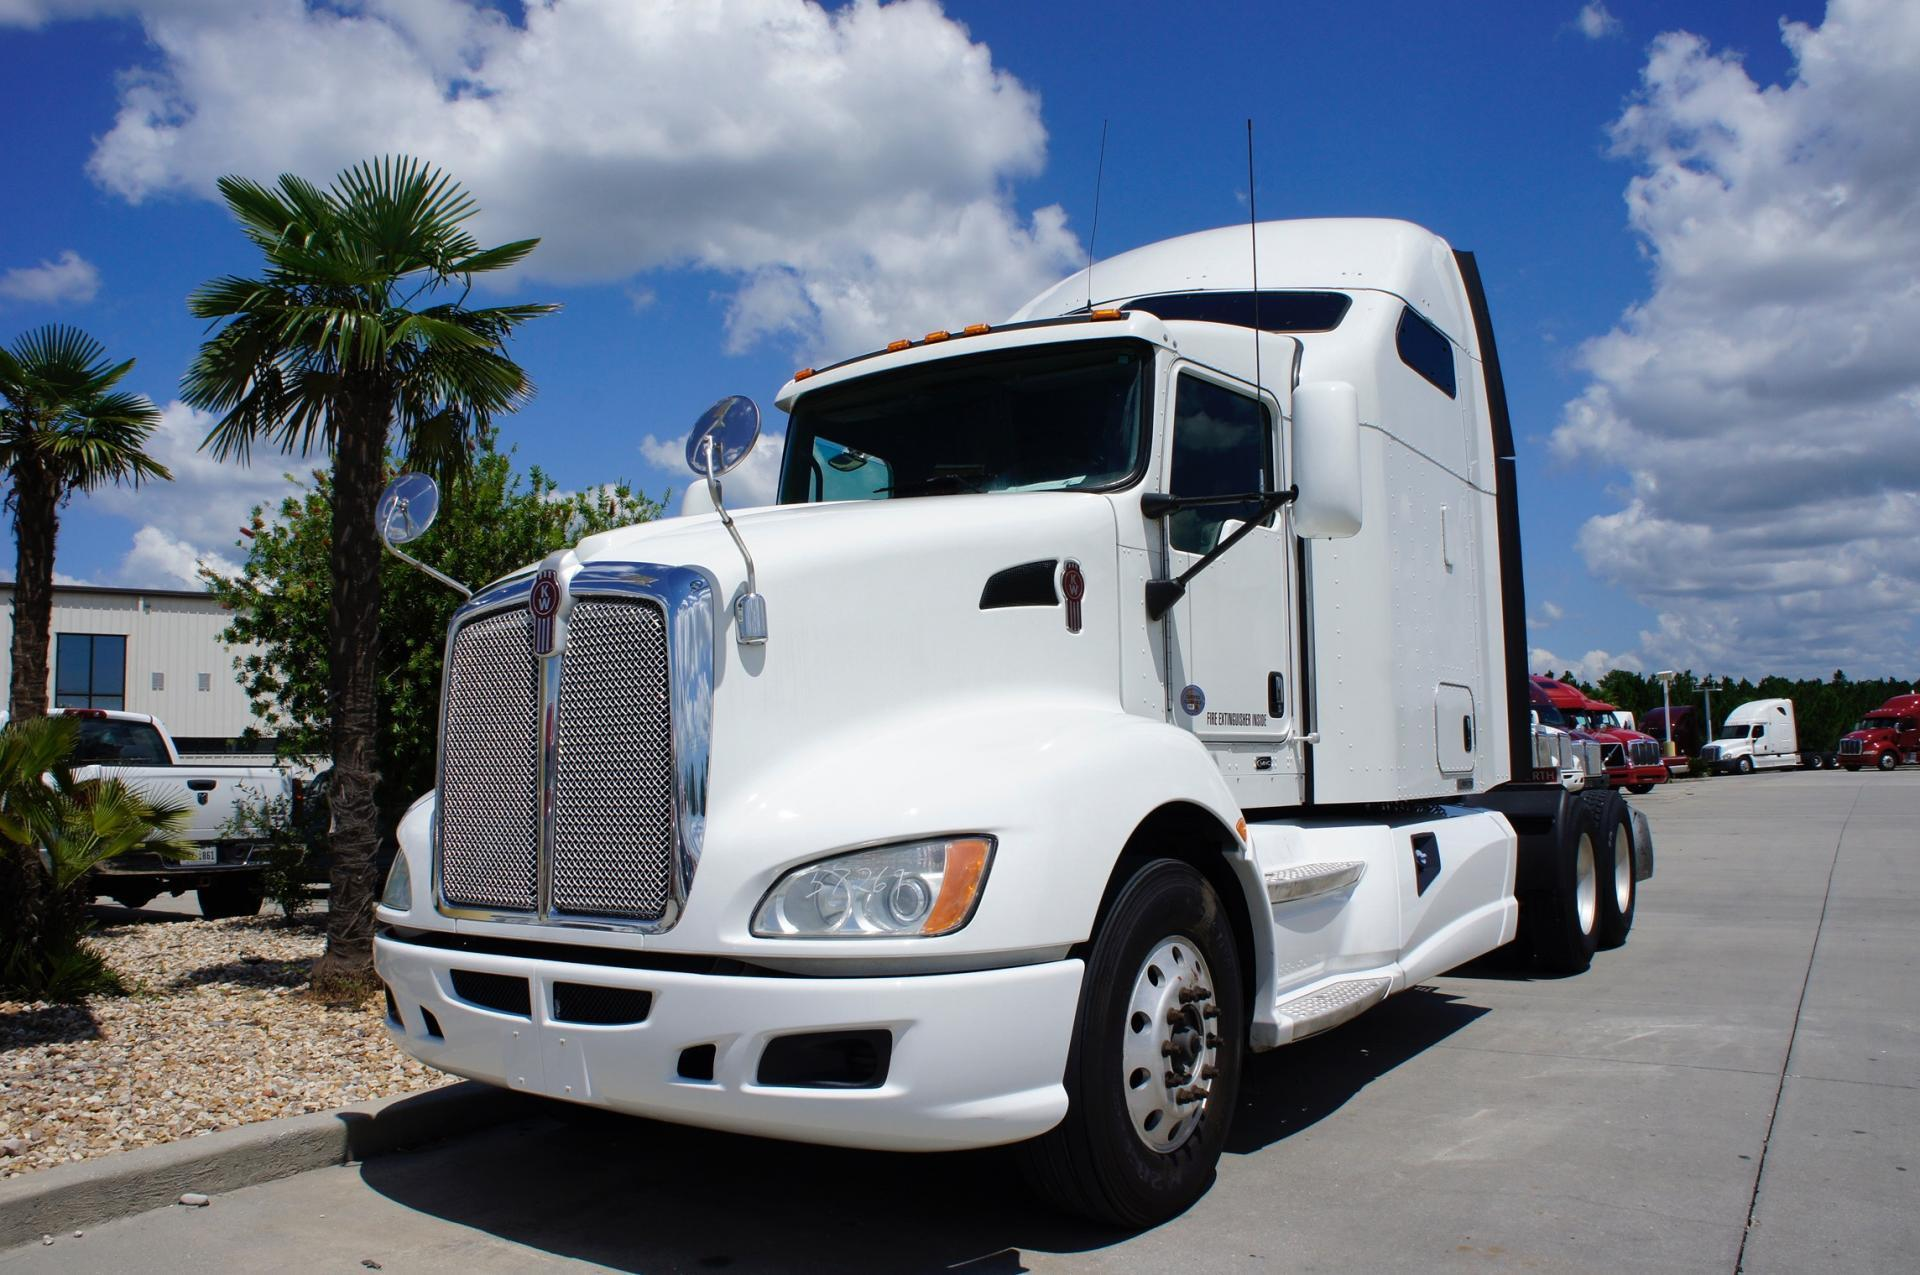 USED 2013 KENWORTH T660 SLEEPER TRUCK #45064